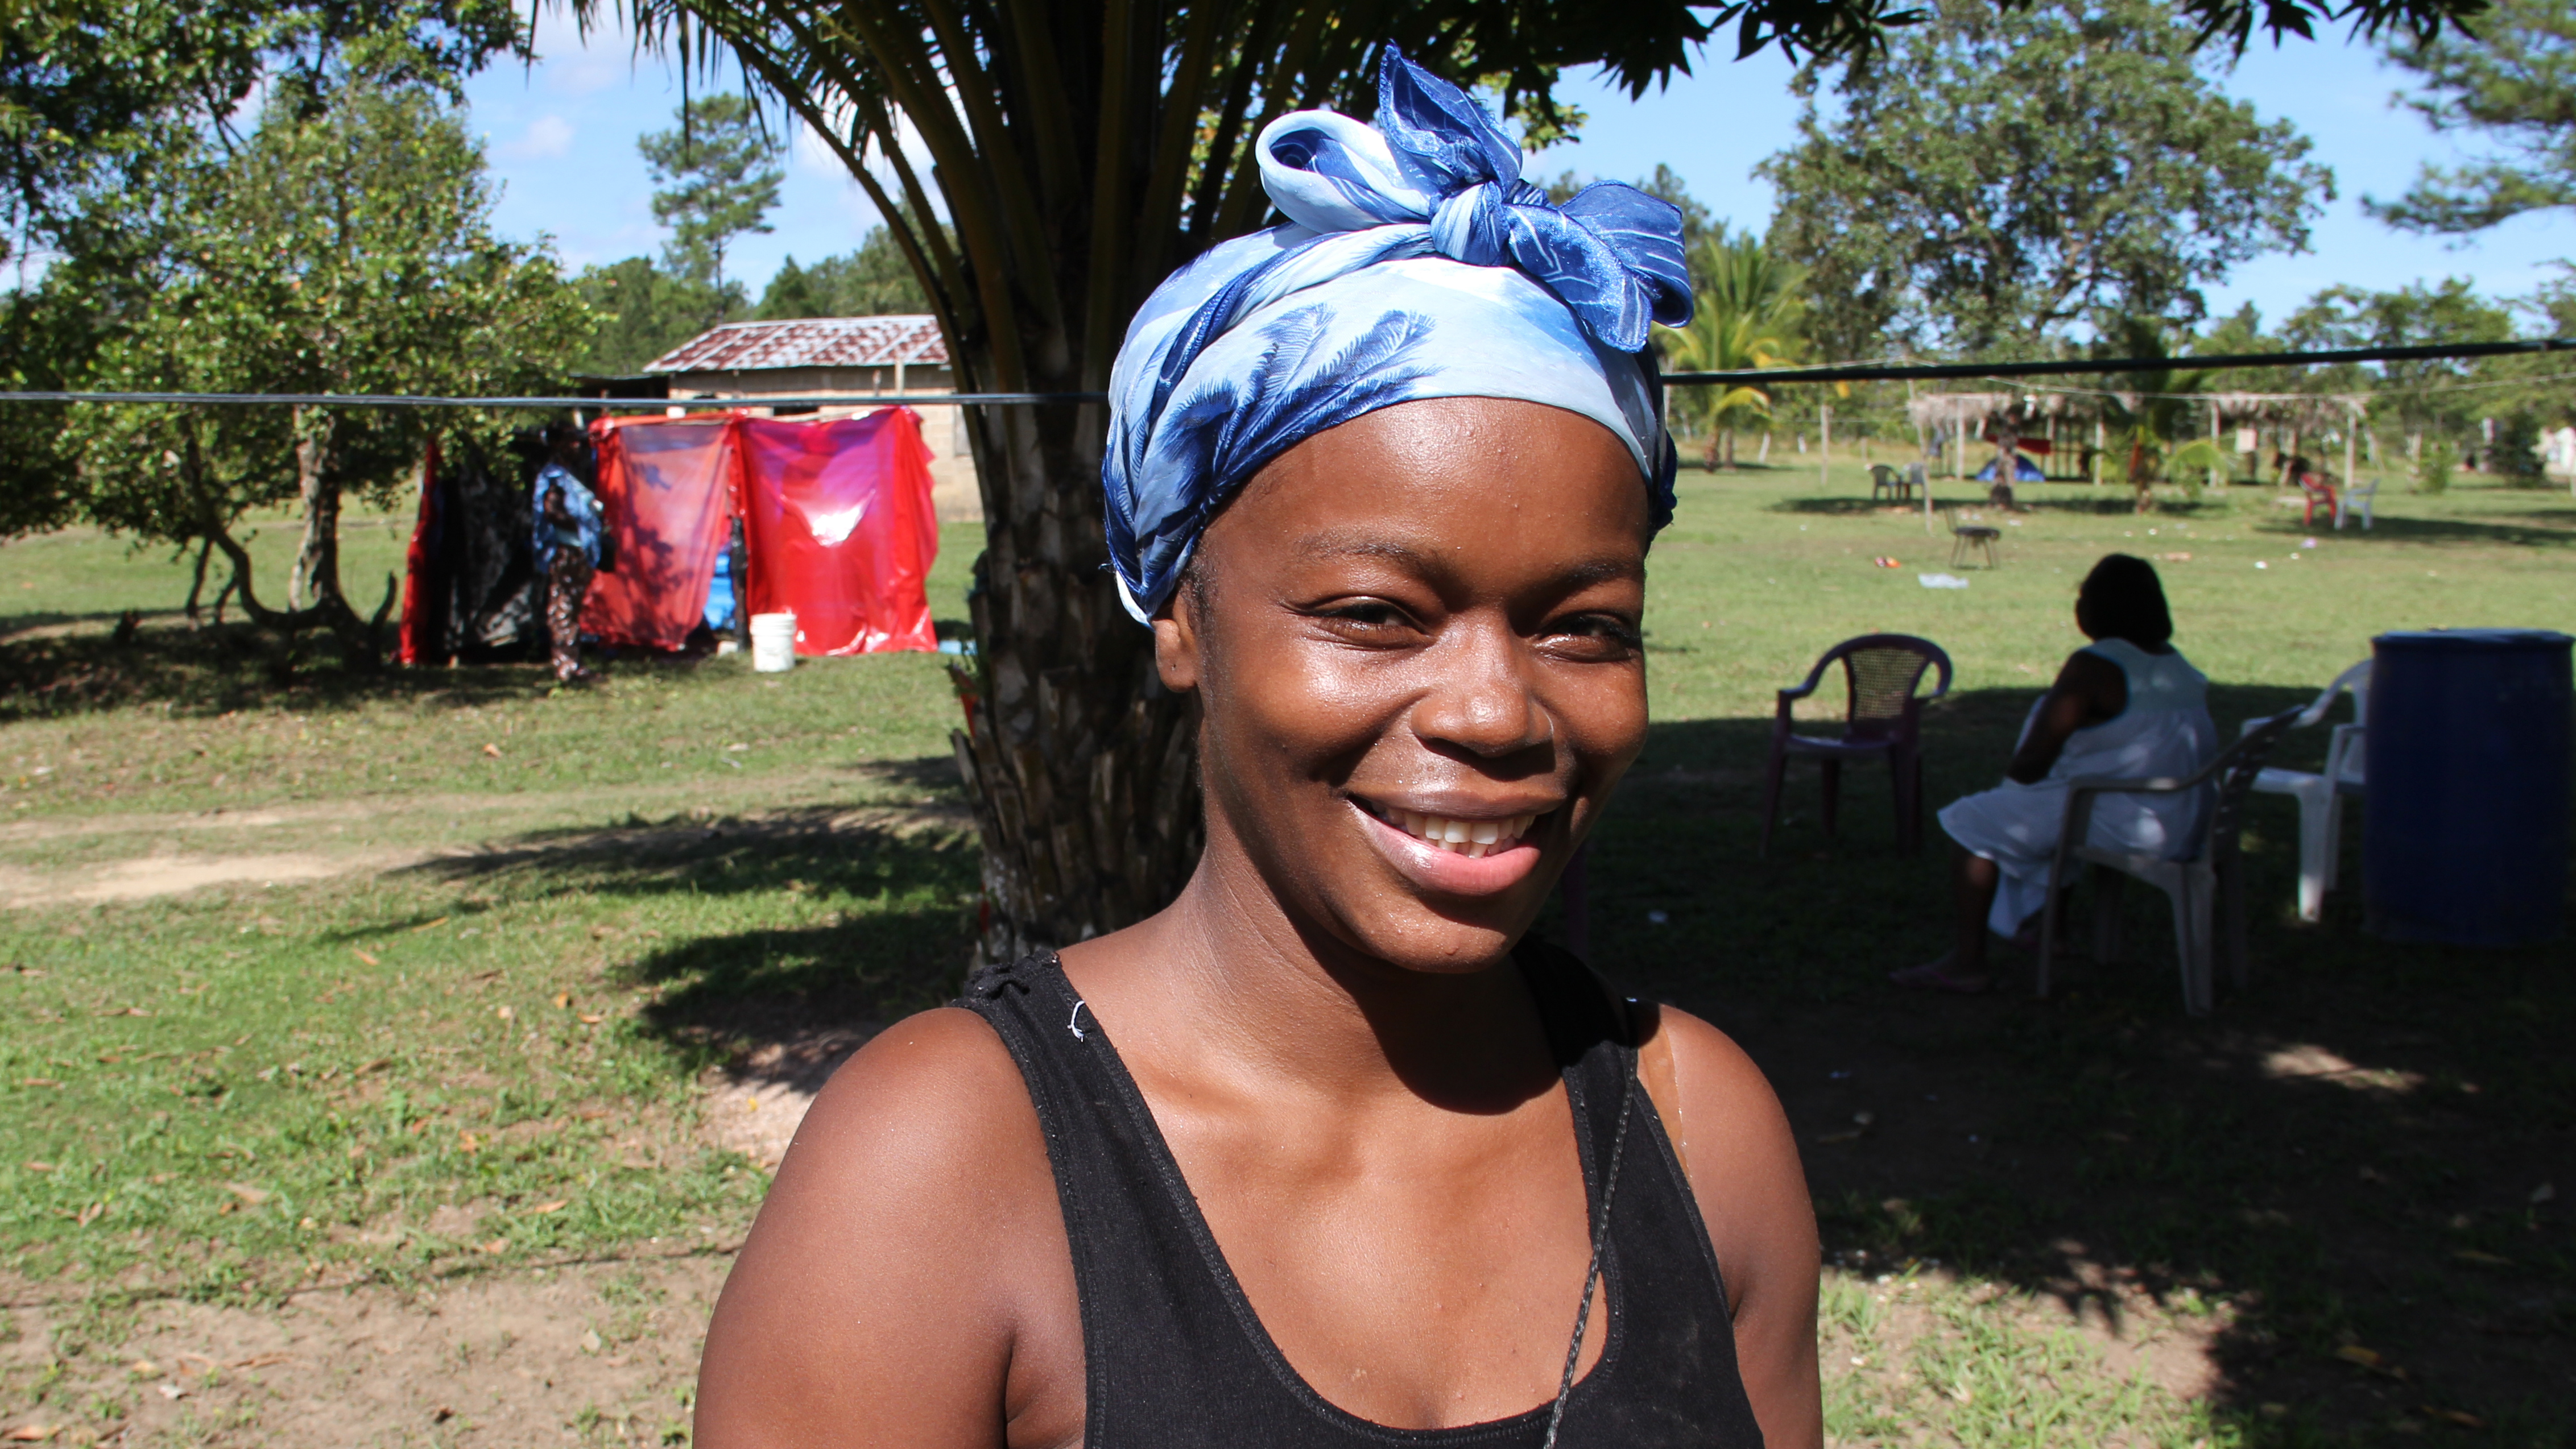 Yillian David is a Garifuna living in Honduras. She's thought of leaving to go to the US, but she's decided to stay to help preserve her culture.